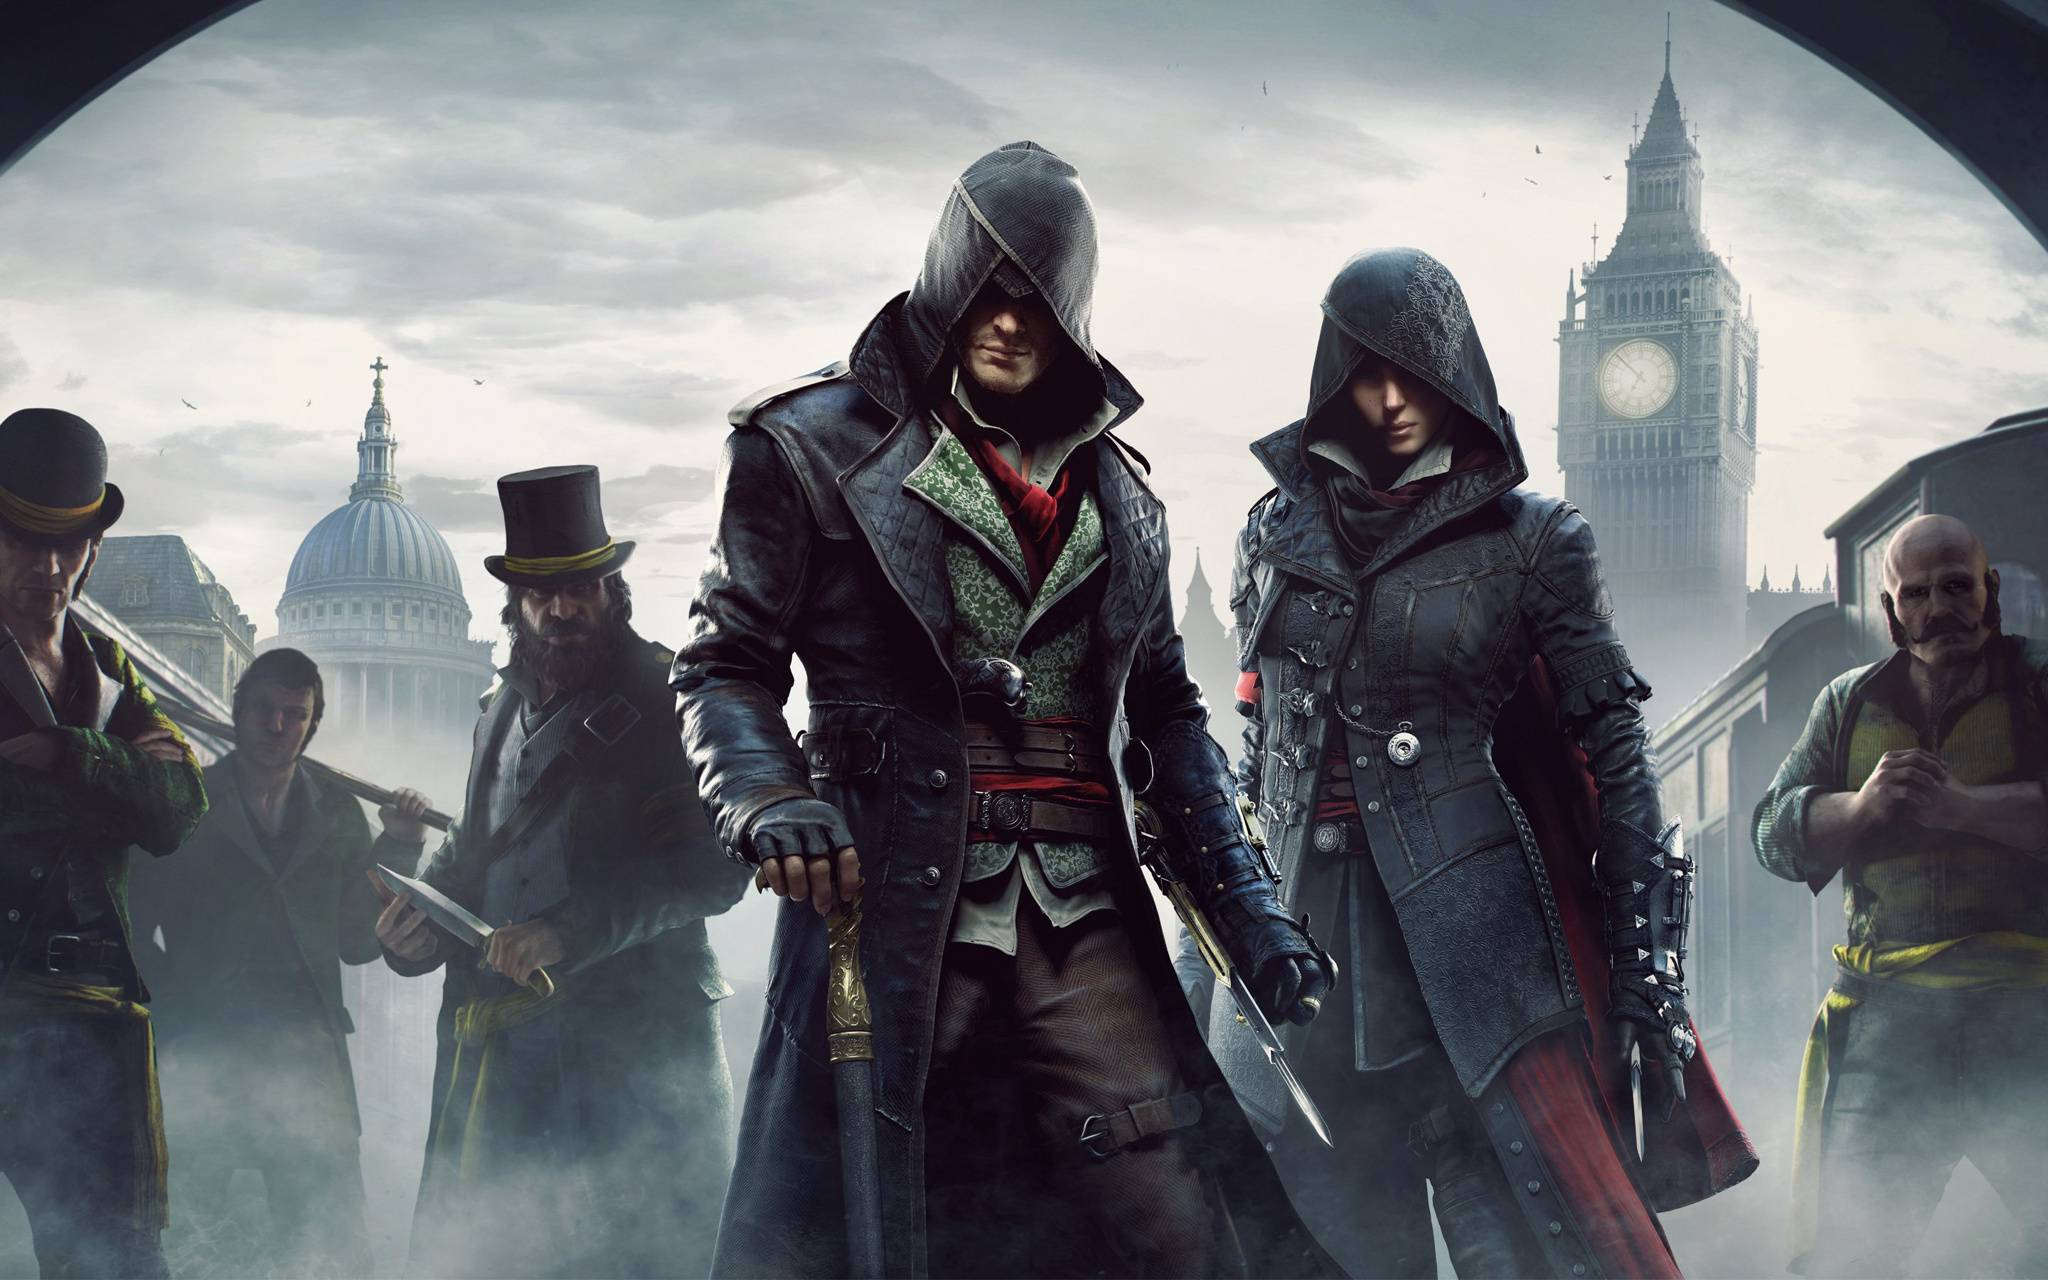 Jacob and Evie Frye